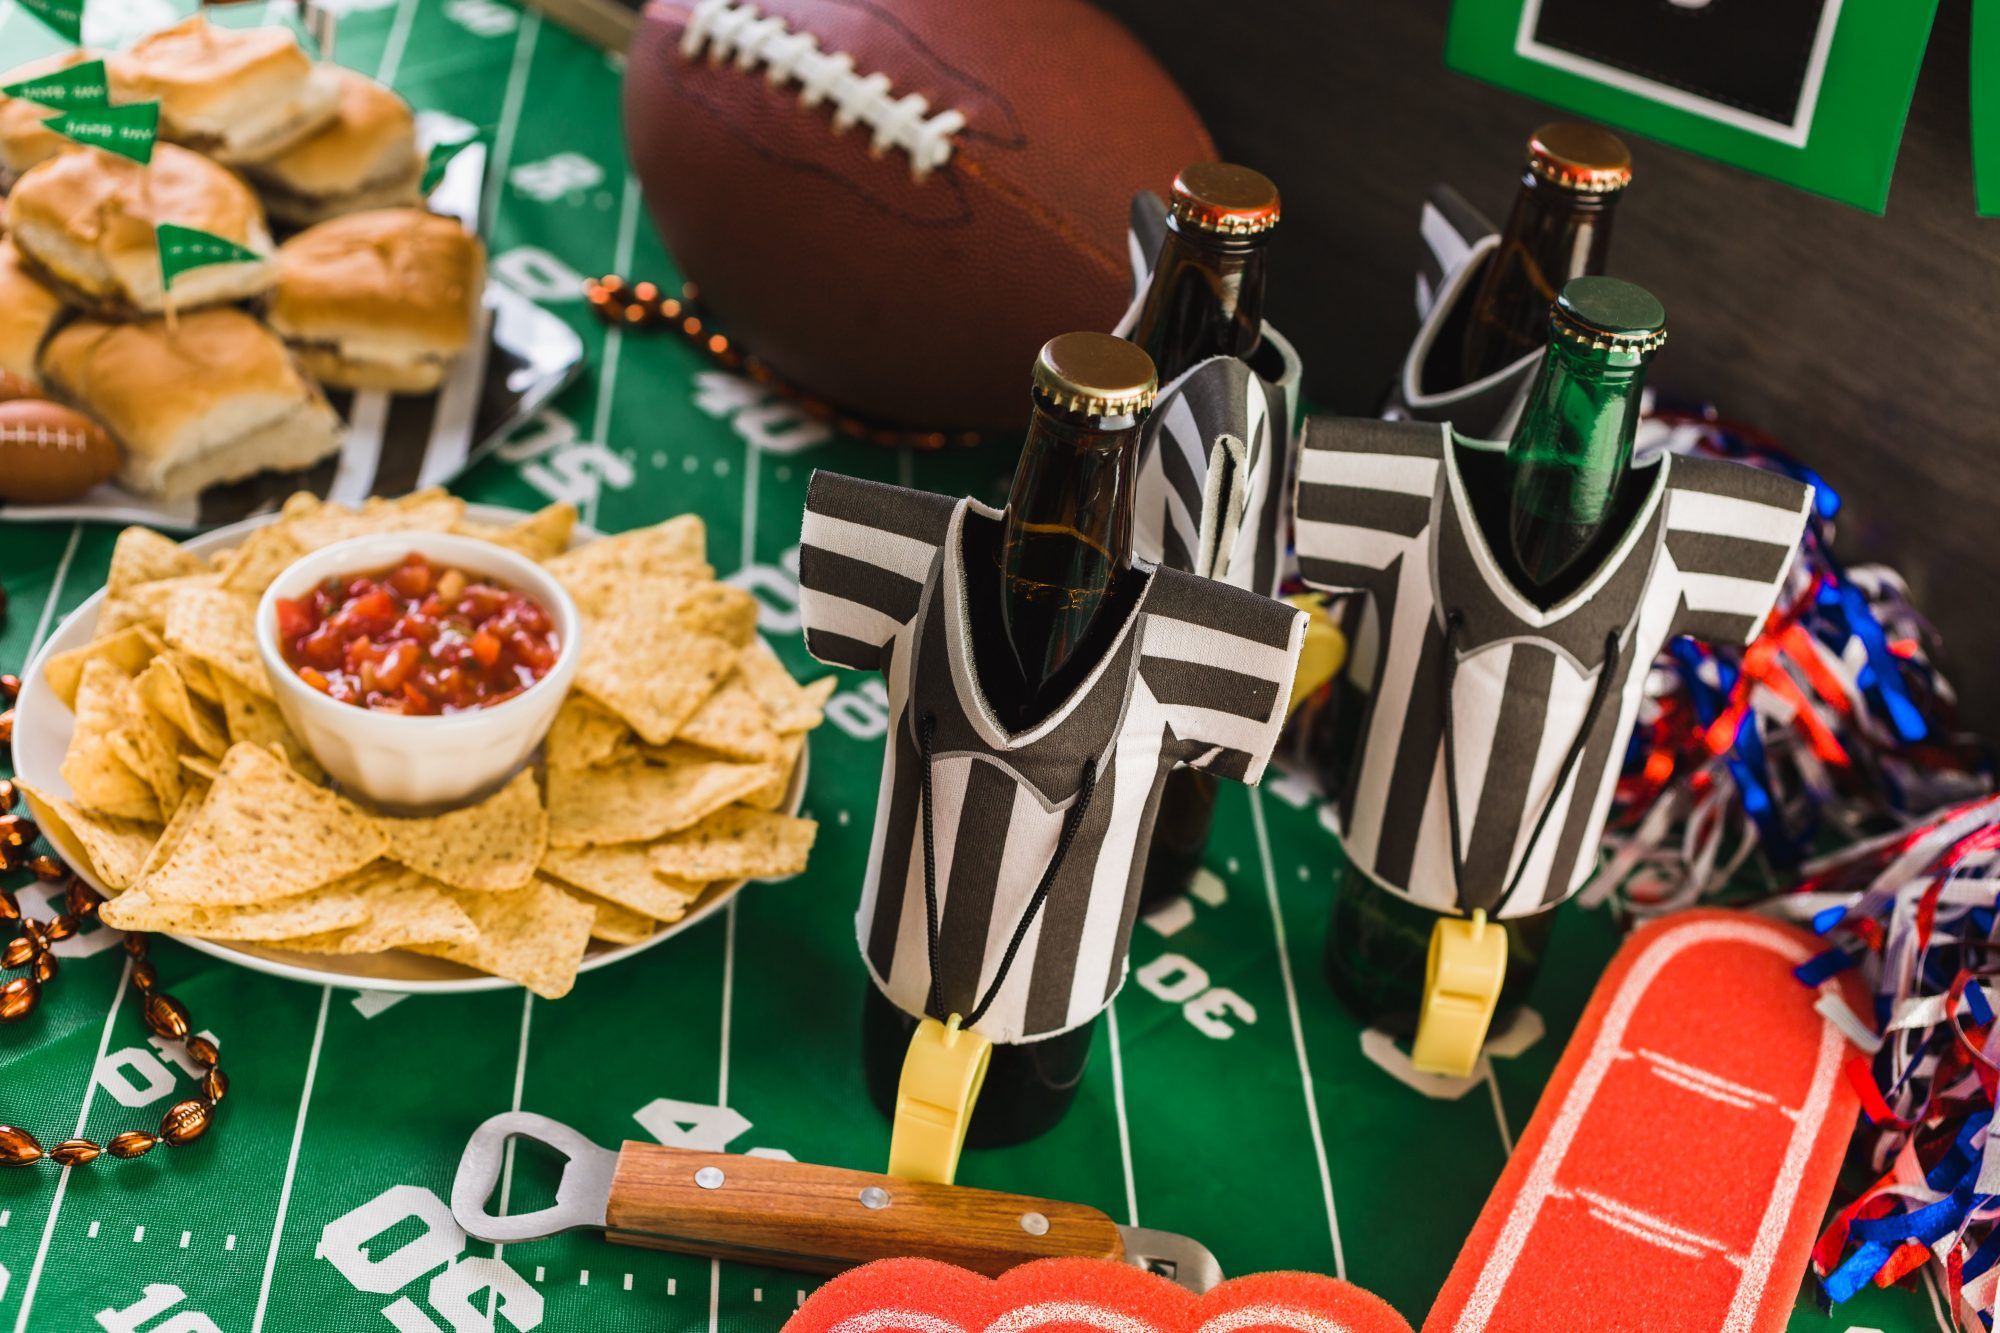 How to Make a Super Bowl Snack Stadium